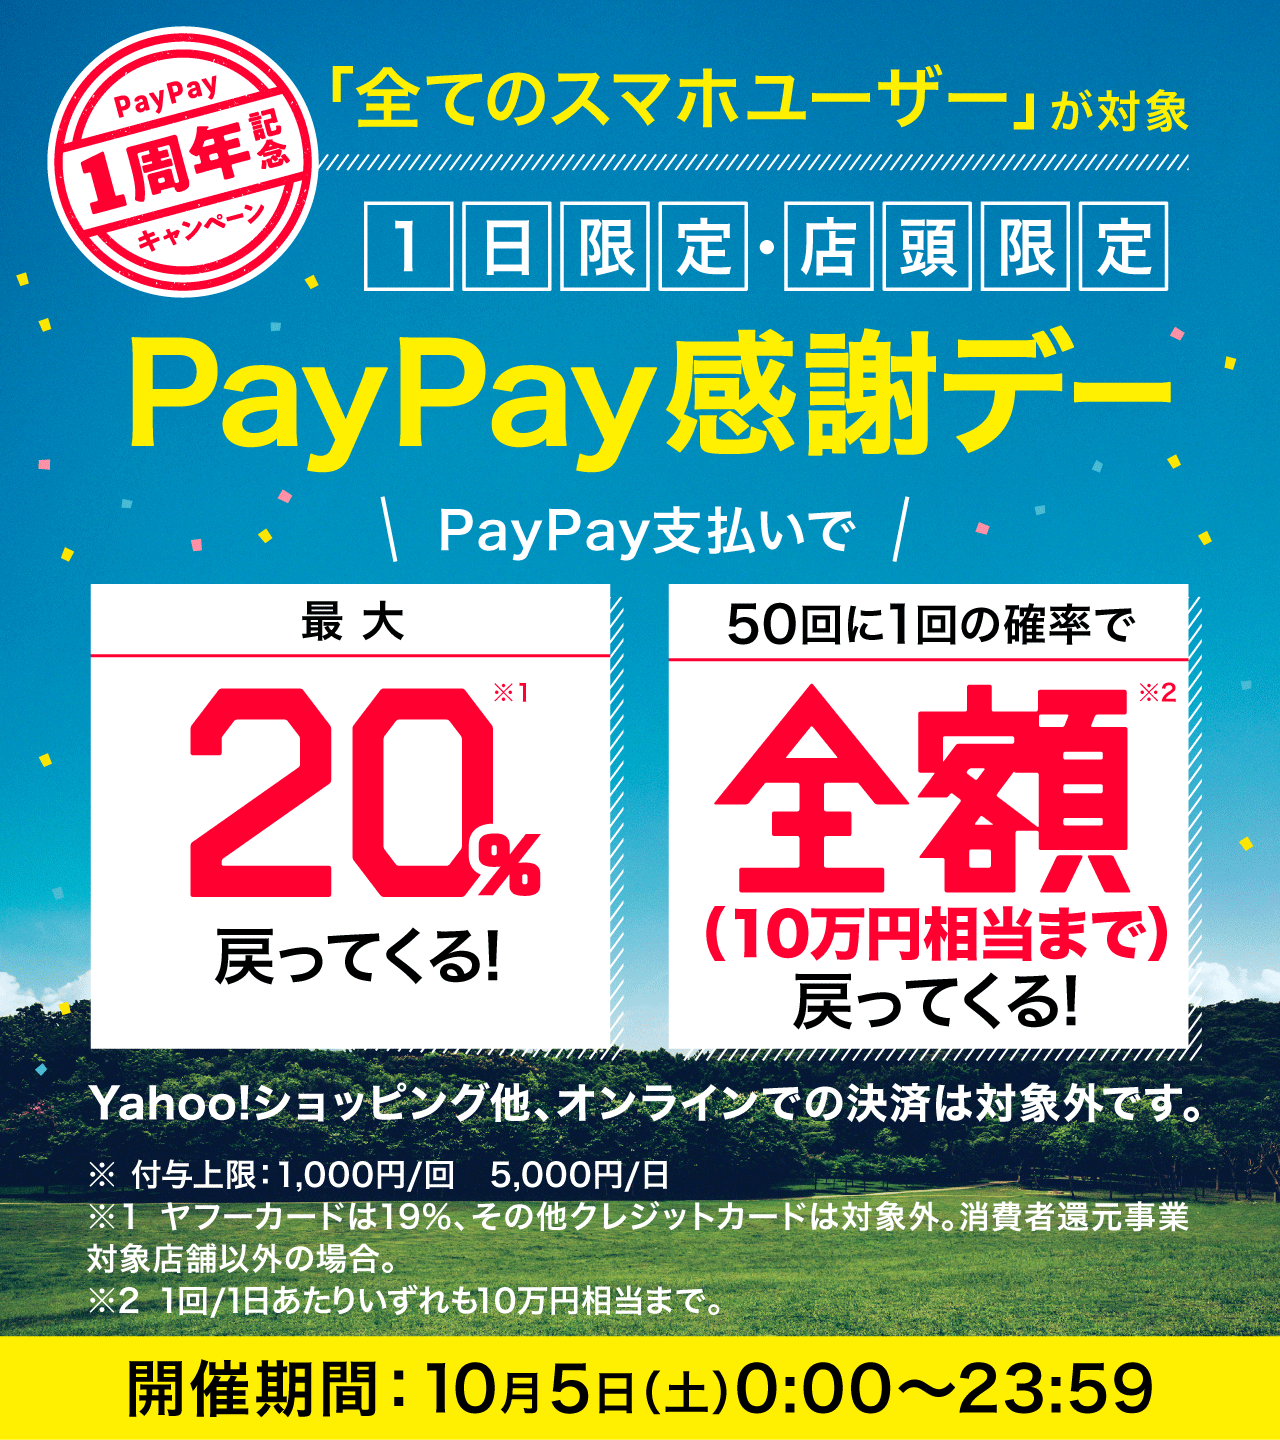 PayPay1周年記念|PayPay感謝デー